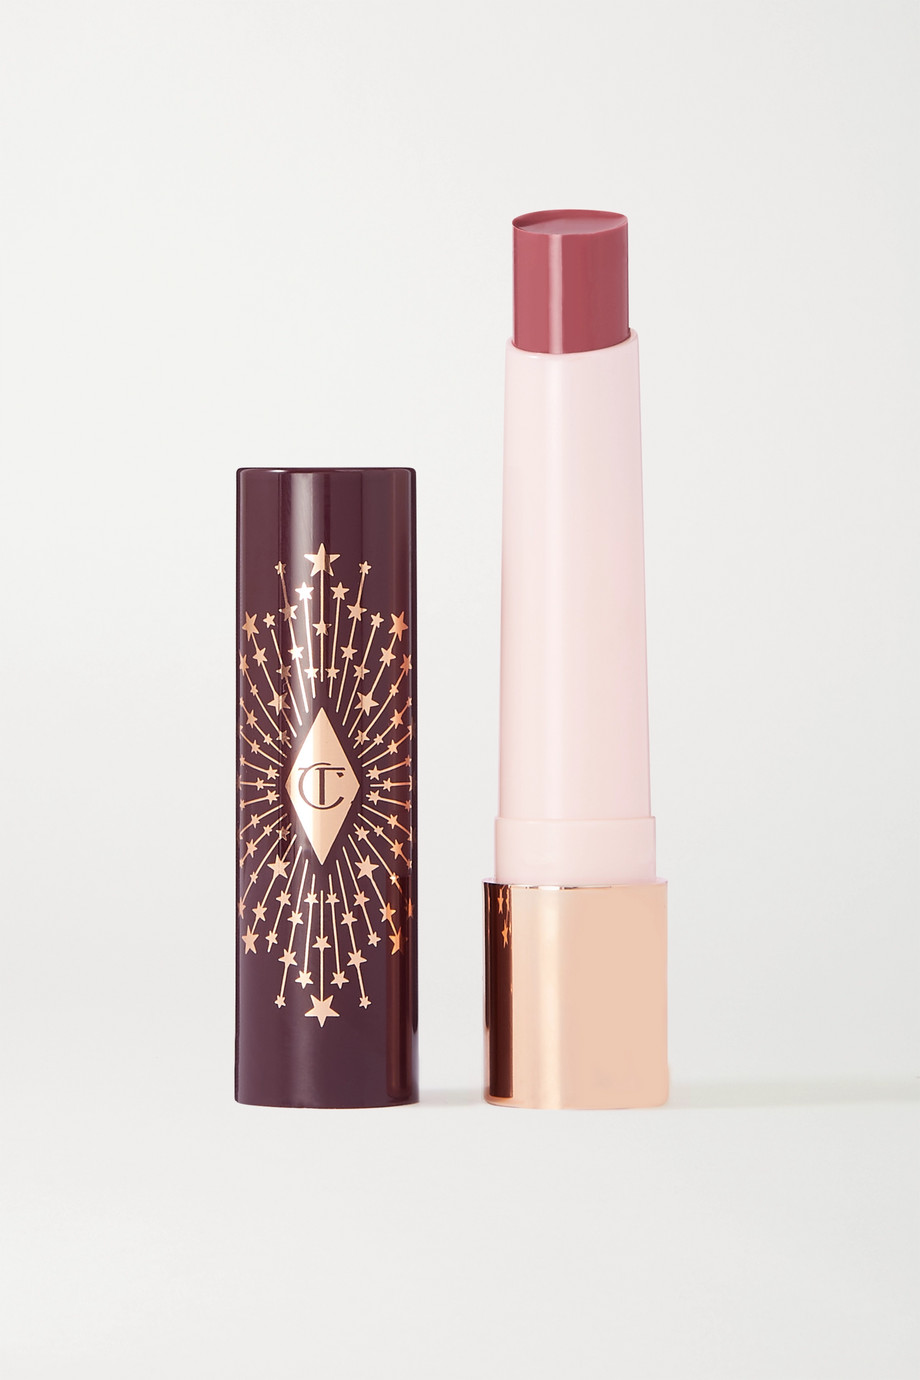 CHARLOTTE TILBURY Hyaluronic Happikiss Lipstick Balm - Pillow Talk